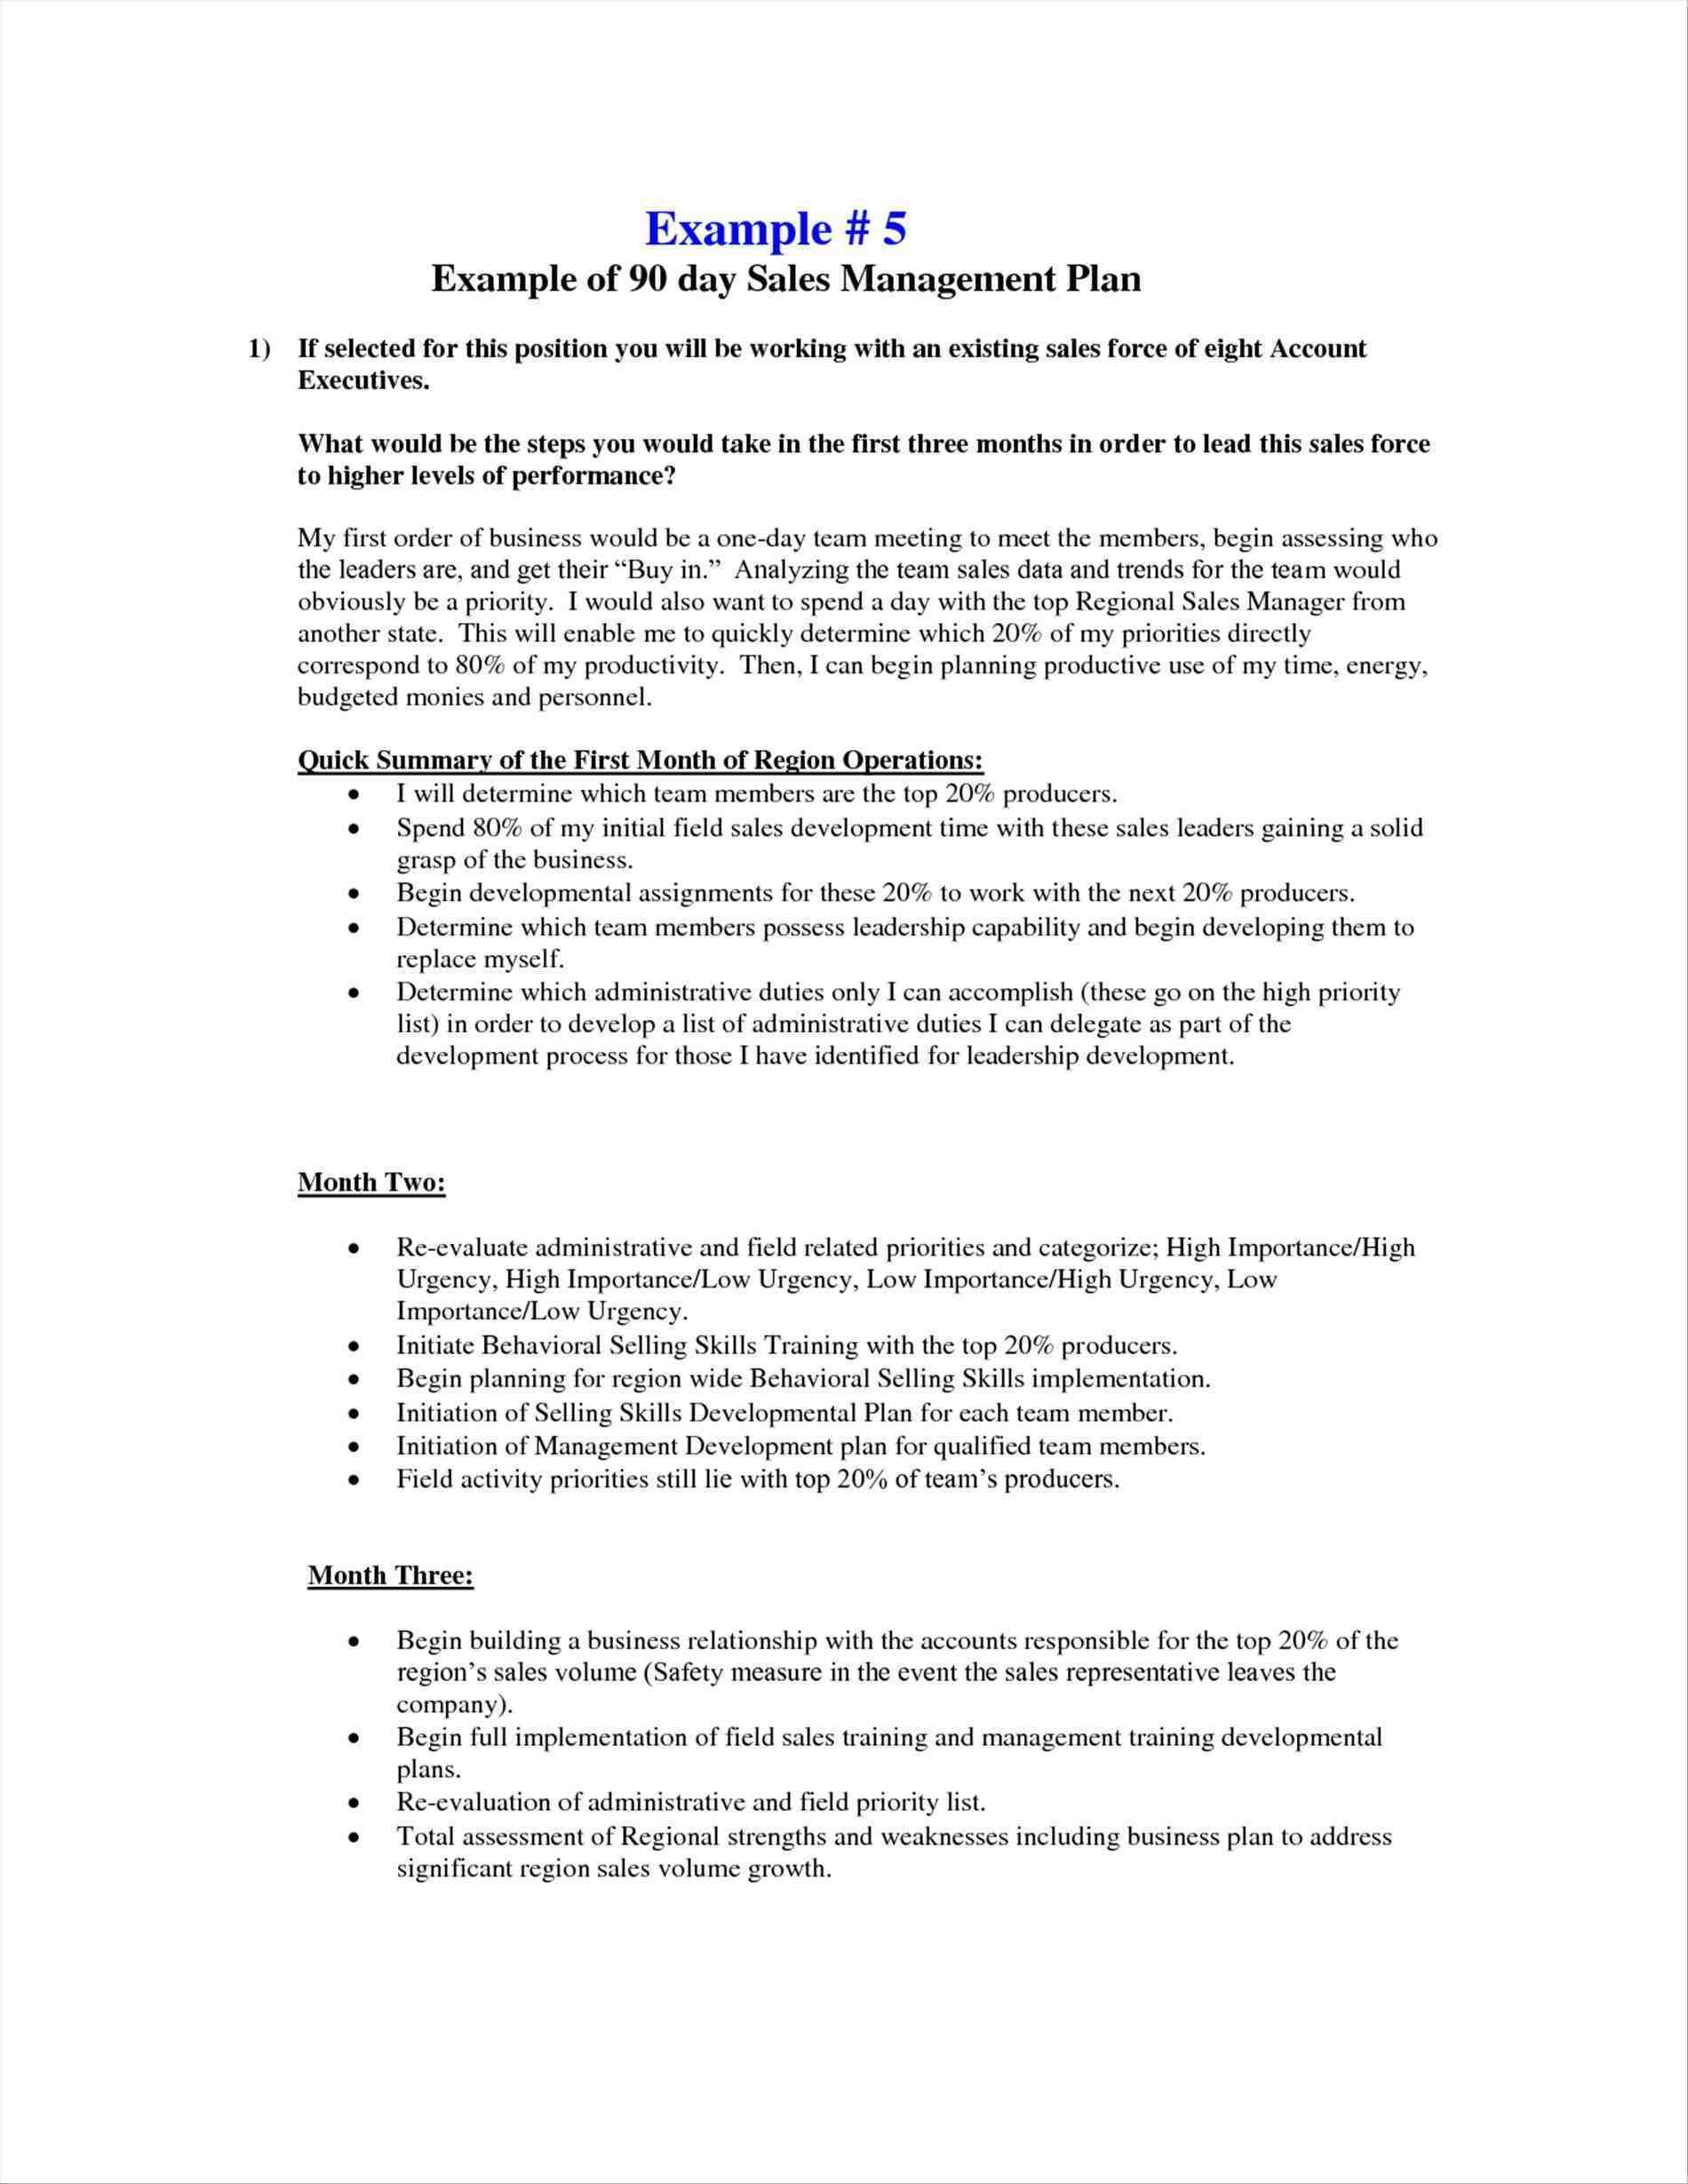 Examples business lease agreement form free sales 90 day business examples business lease agreement form free sales 90 day business plan template for interview plan template examples business lease agreement form accmission Gallery